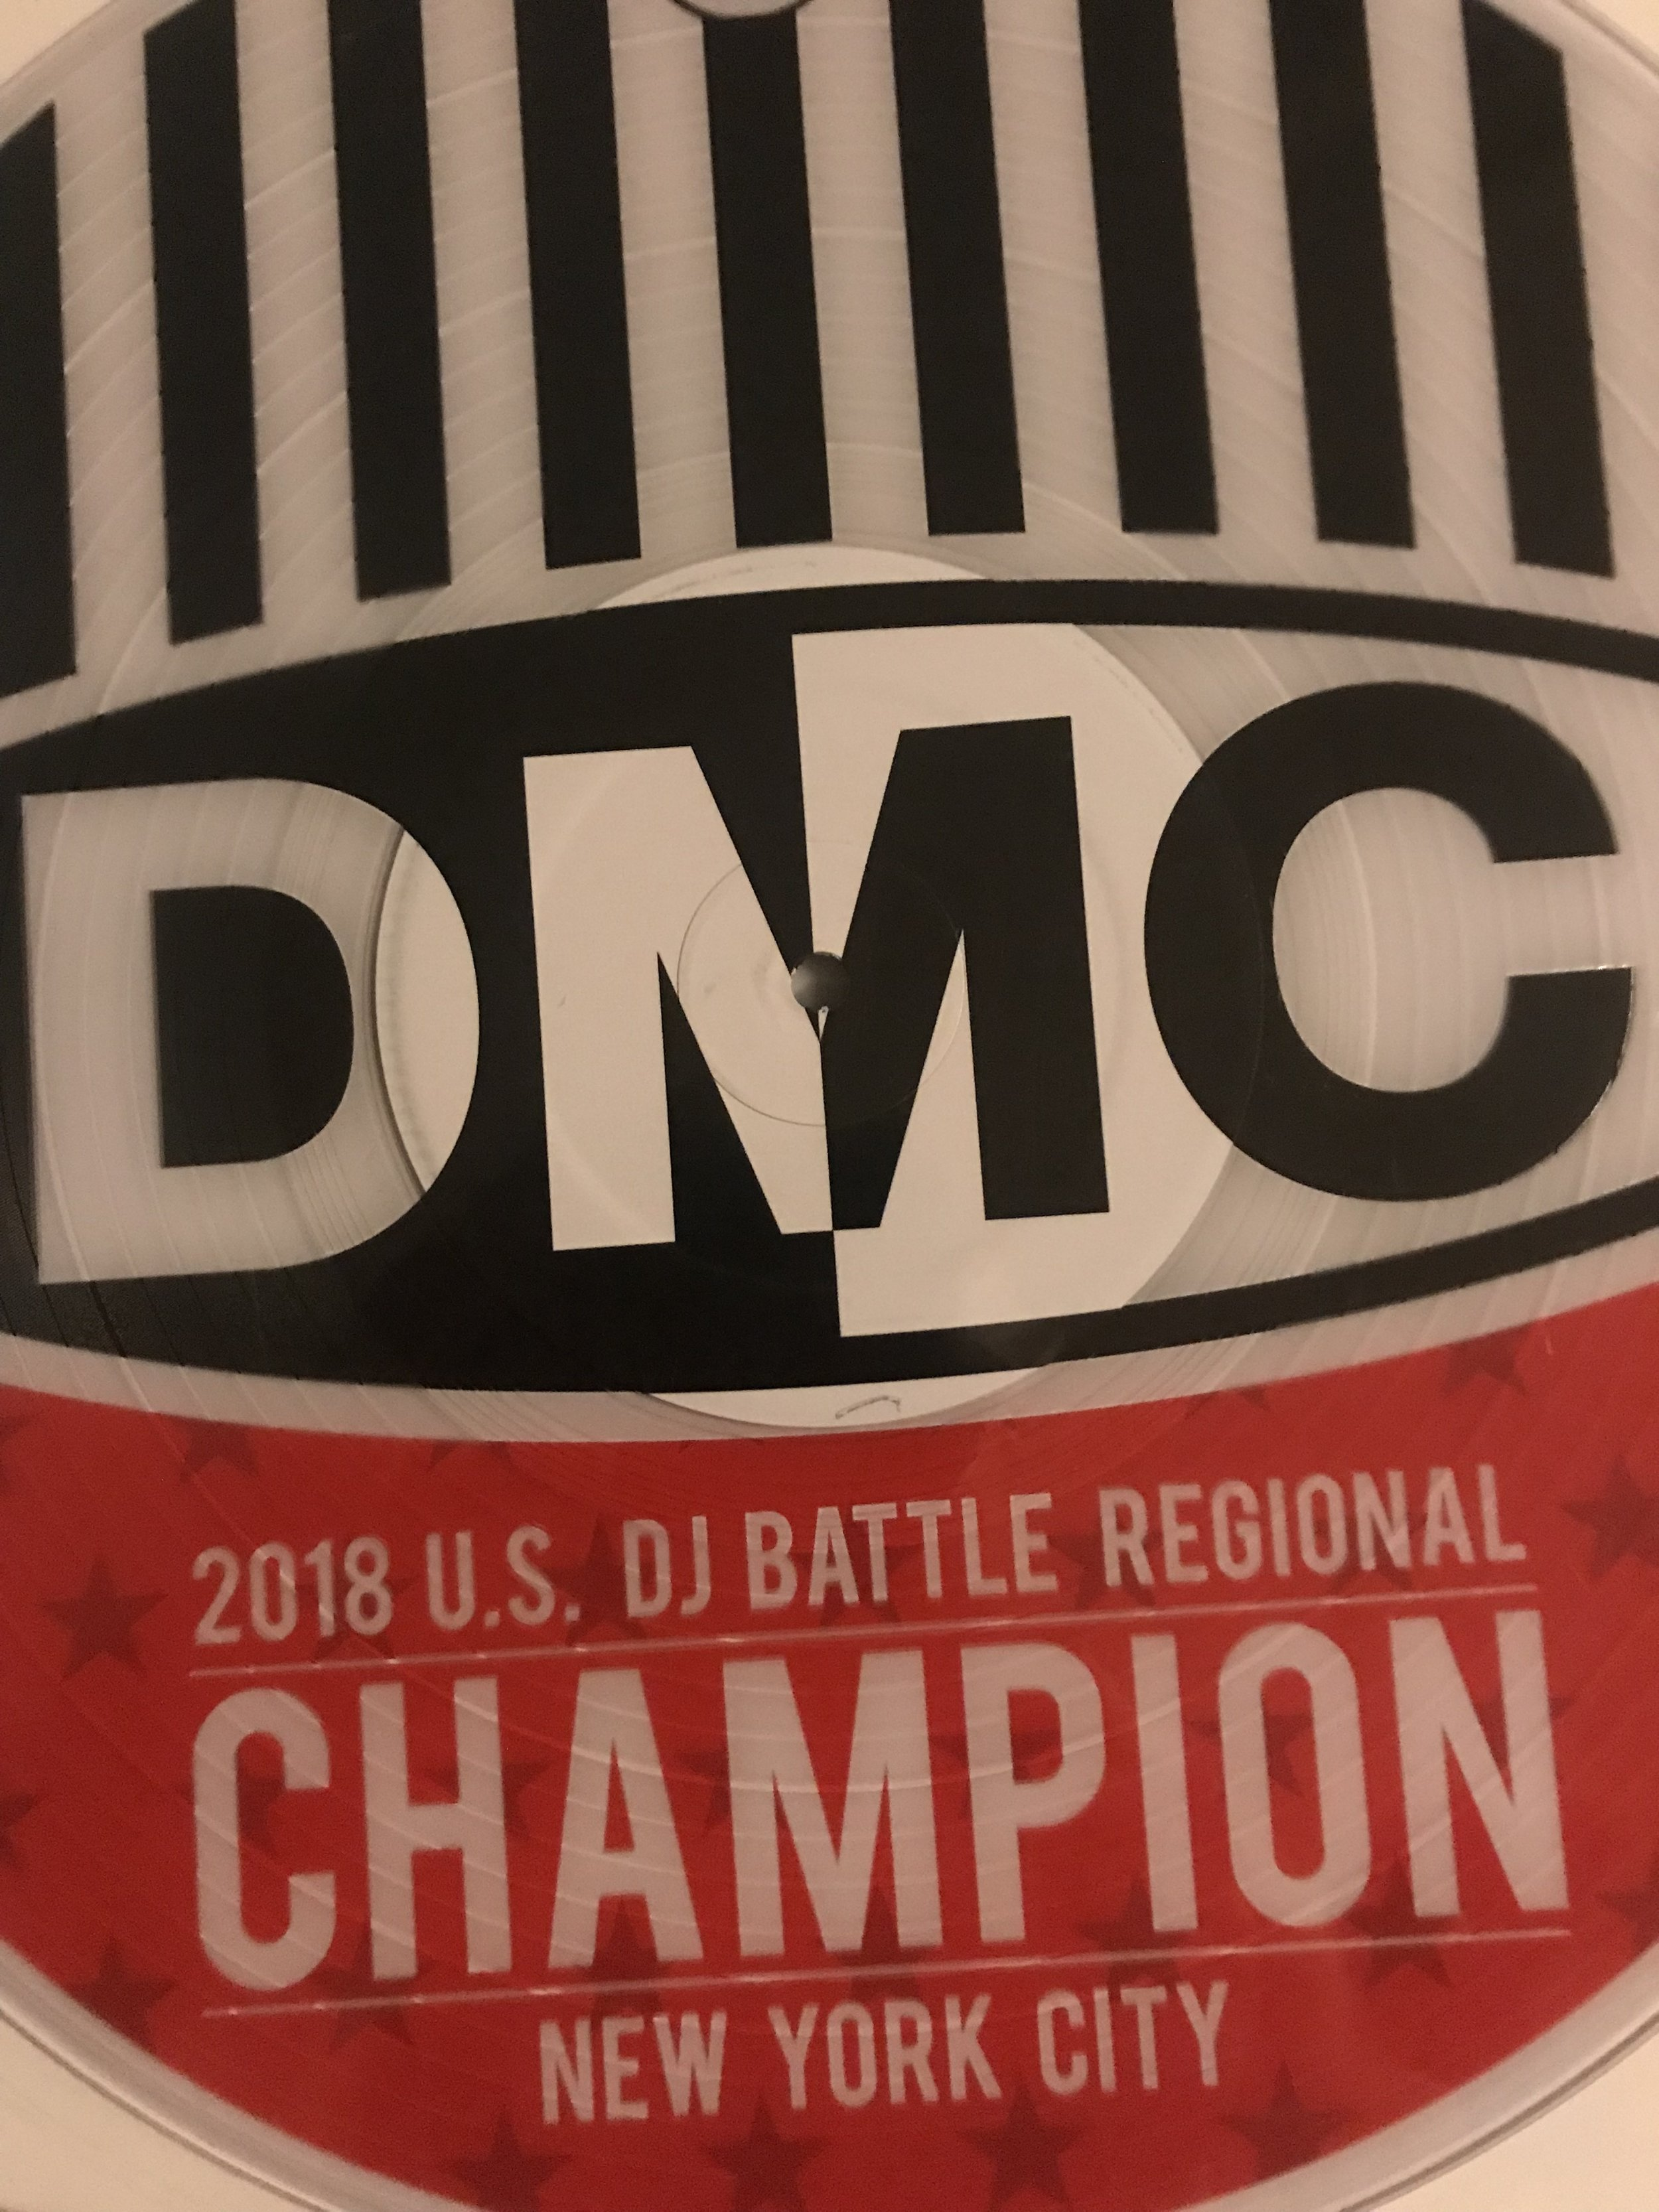 DJ Kool Flash made History in April, 2018 becoming the 1st Afro-American female DMC USA Regional Champion by capturing the NYC Title    http://thesource.com/2018/04/11/11-year-old-dj-kool-flash-wins-dmc-regional-competition-in-nyc/    https://djtimes.com/kid-stuff-kool-flash-11-takes-dmcs-ny-title/   She made more History in August, 2018 as she battled against 9 other Regional Champions for the DMC USA National Title   https://hiphopdx.com/news/id.48017/title.11-year-old-dj-kool-flash-makes-history-at-2018-dmc-us-finals